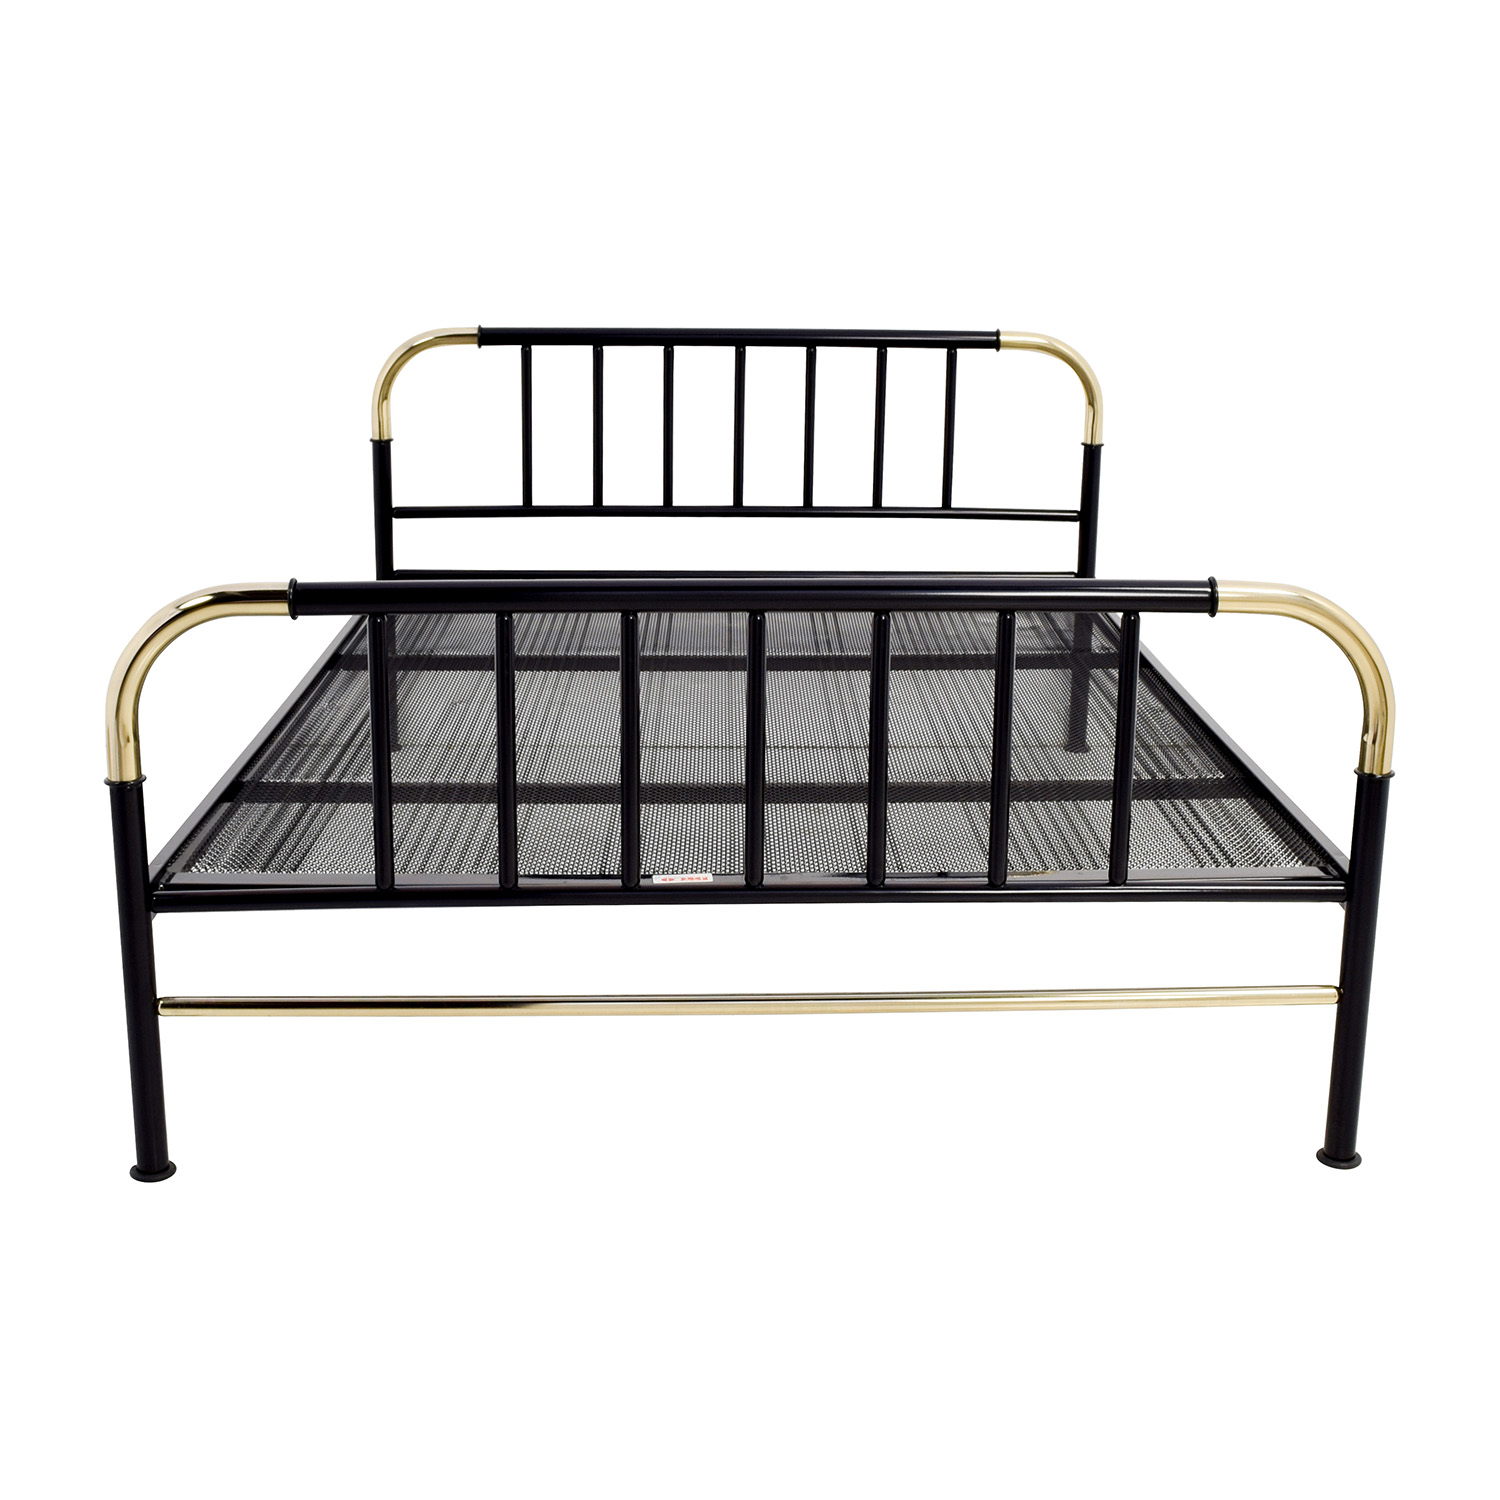 Black with Gold Trim Full Metal Bed nj